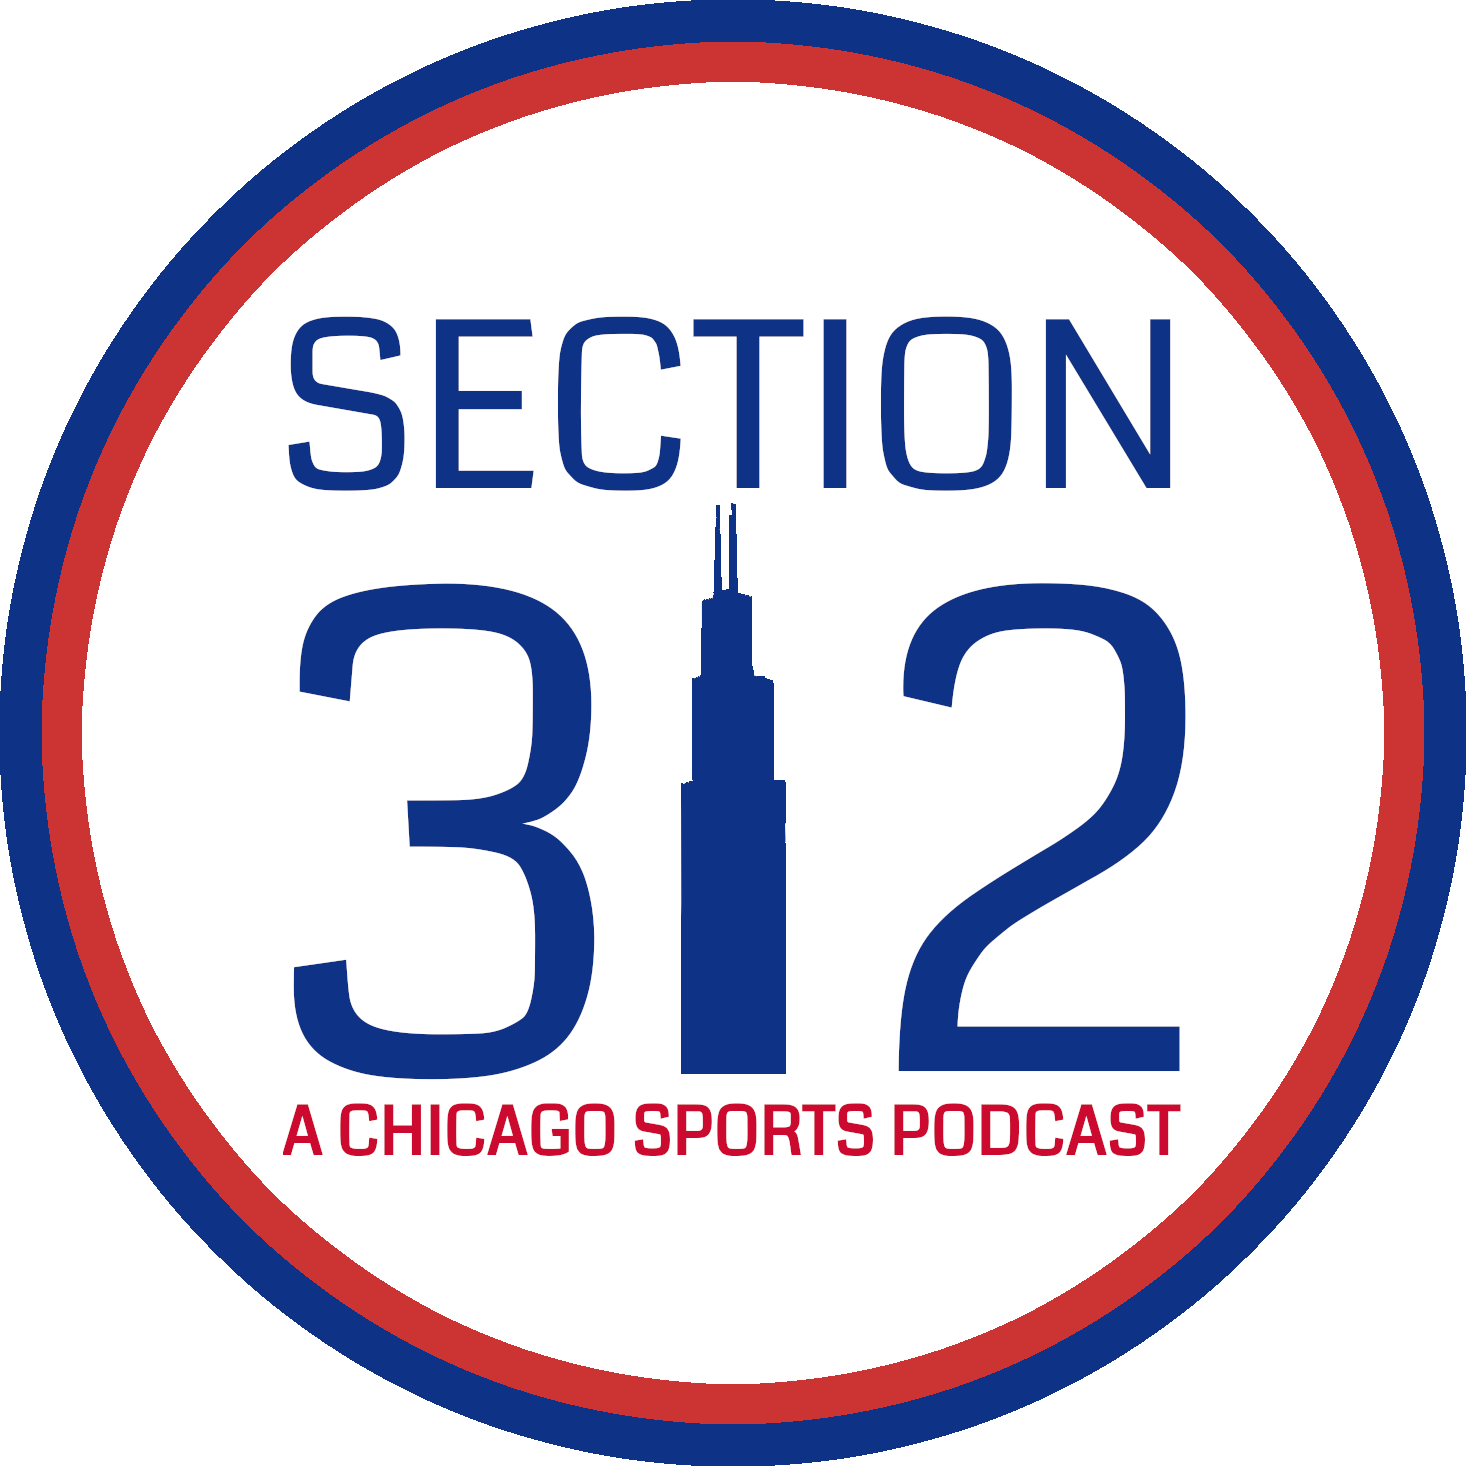 Section 312 logo